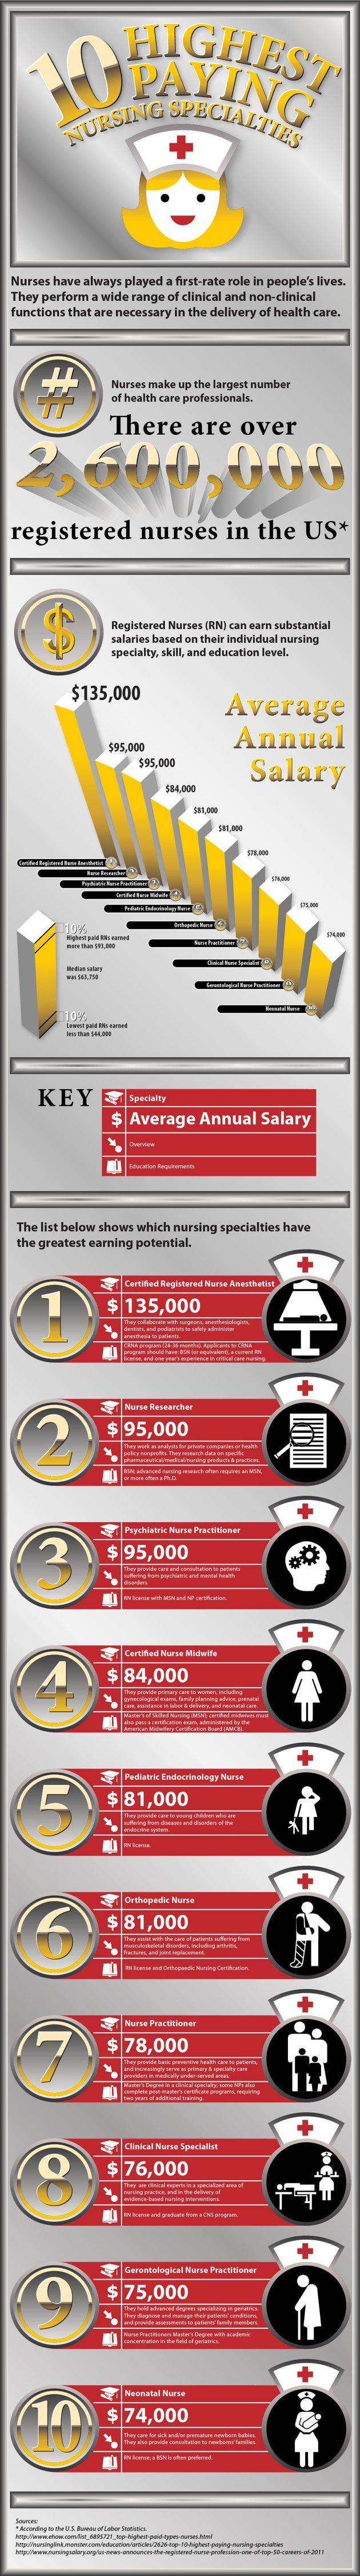 10 Highest Paying Nursing Specialties. Not that's it's about the money, but...